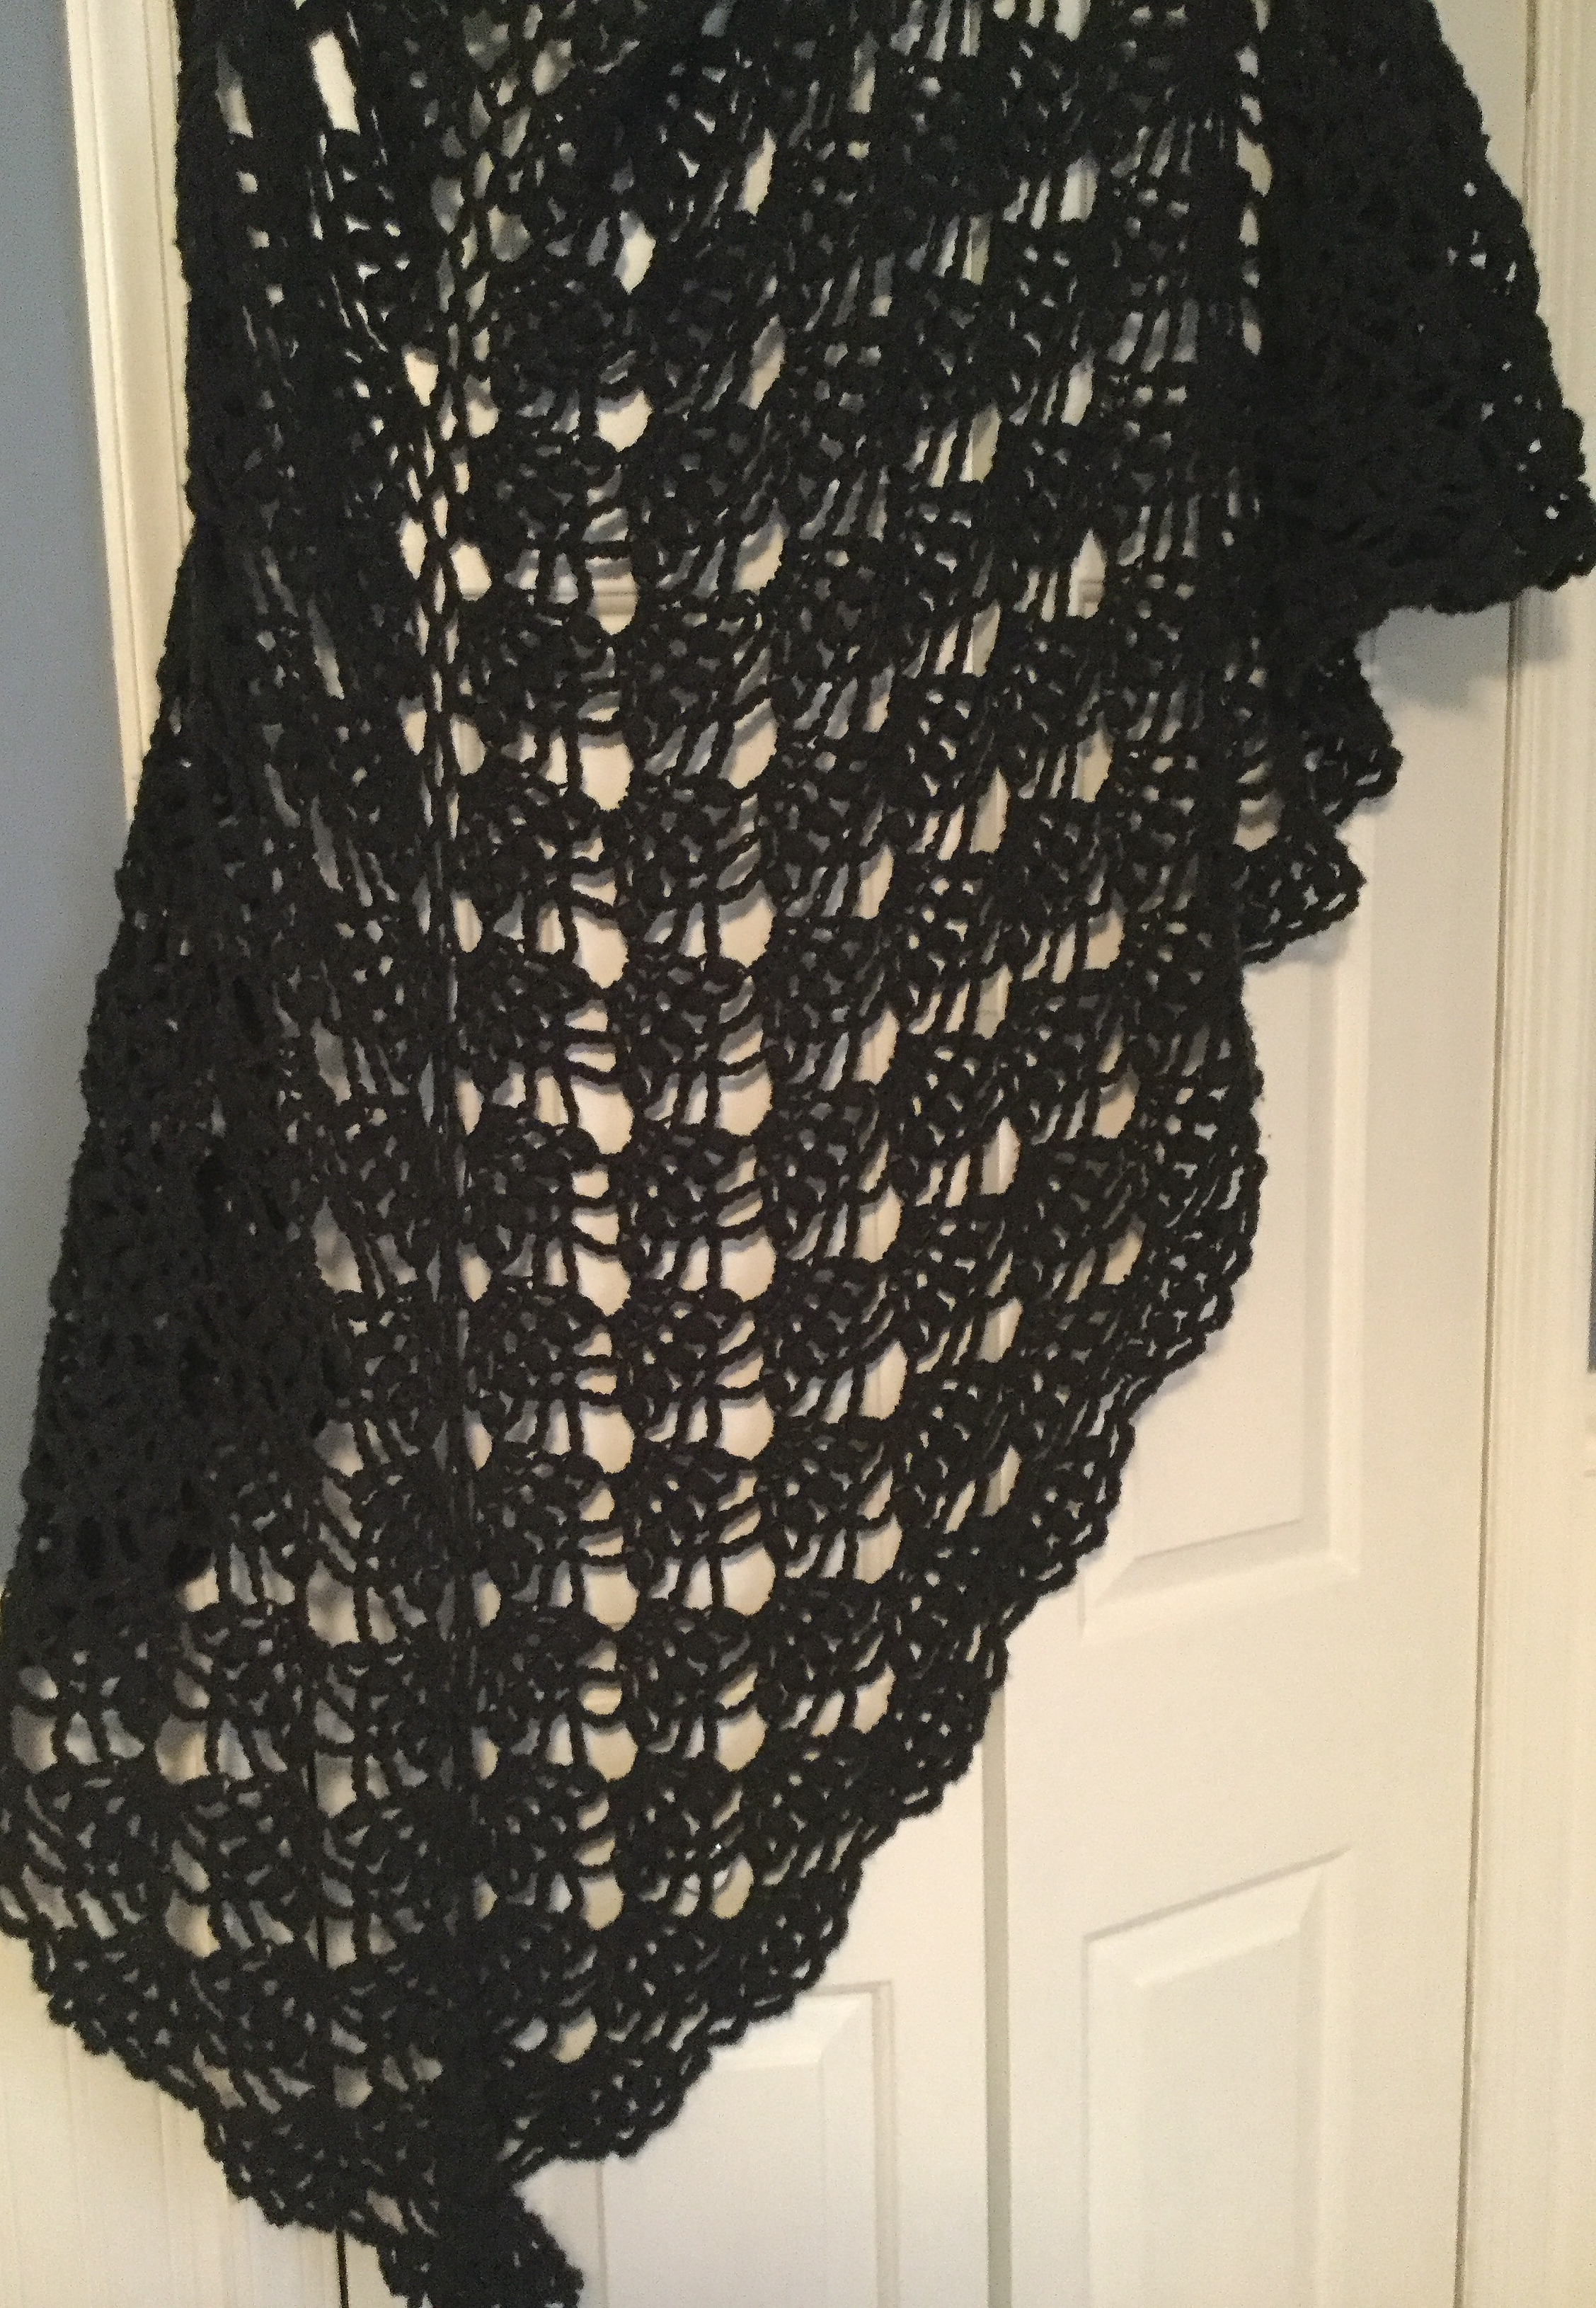 A gi-GAN-tic scallop-shell shawl in charcoal gray - one of my earliest creations - my mother gave me a fantastic brooch I use as a closure